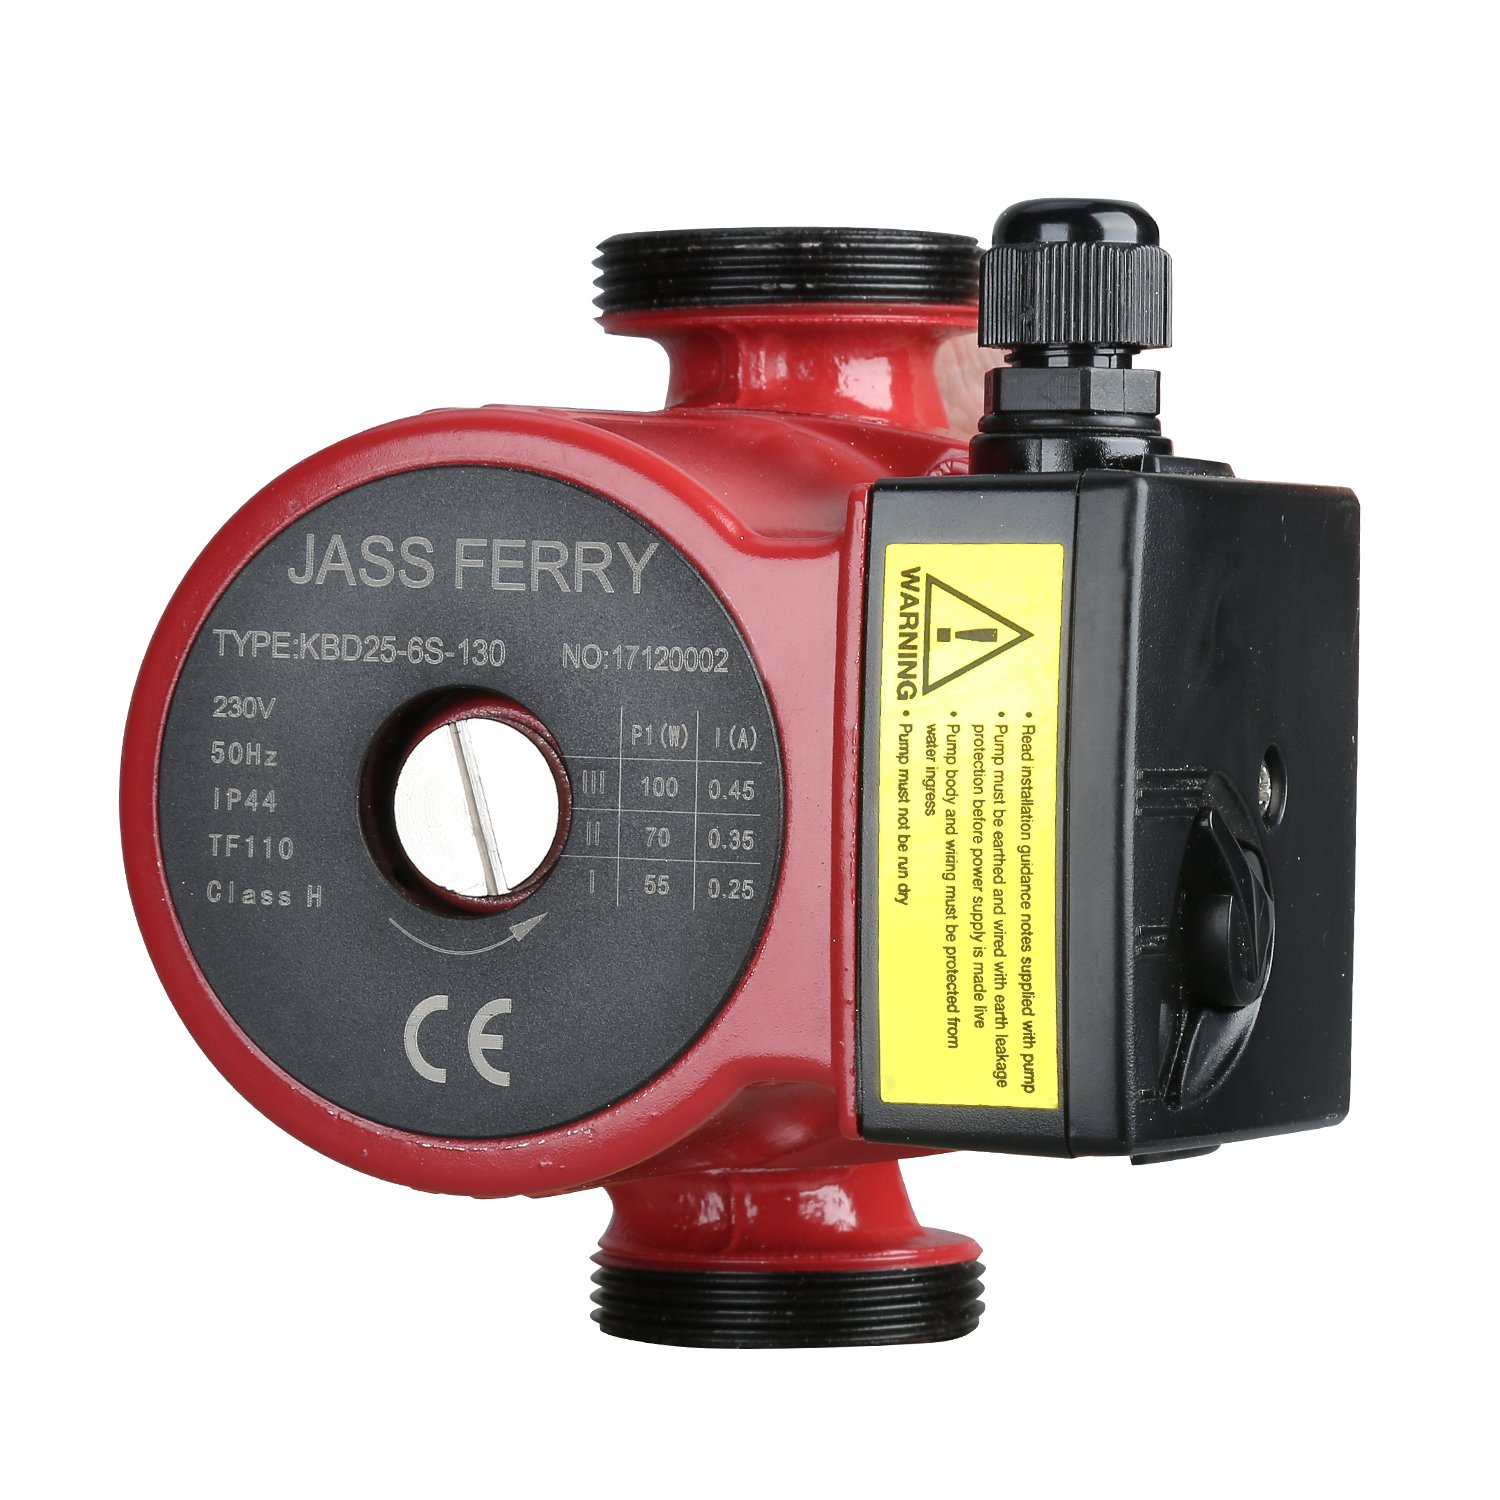 JASS Ferry Central Heating Pumps Boiler Circulating Hot Water Circulation Systems & Cooling Replacement 60 decimetres Head KBD25-6S-130 1-1/2'